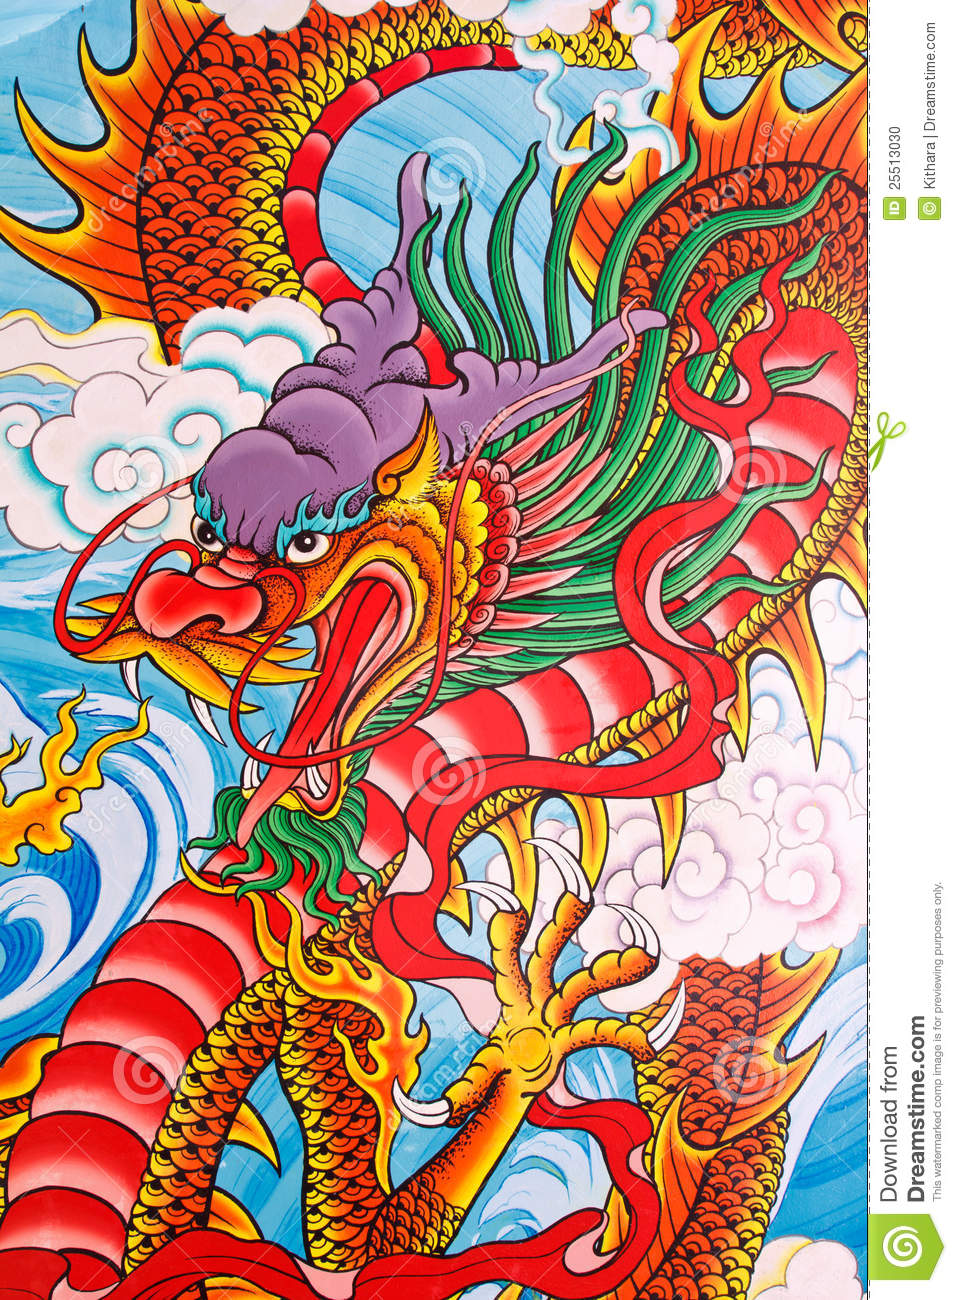 Chinese dragon painting on the wall at Chinese temple, Thailand.